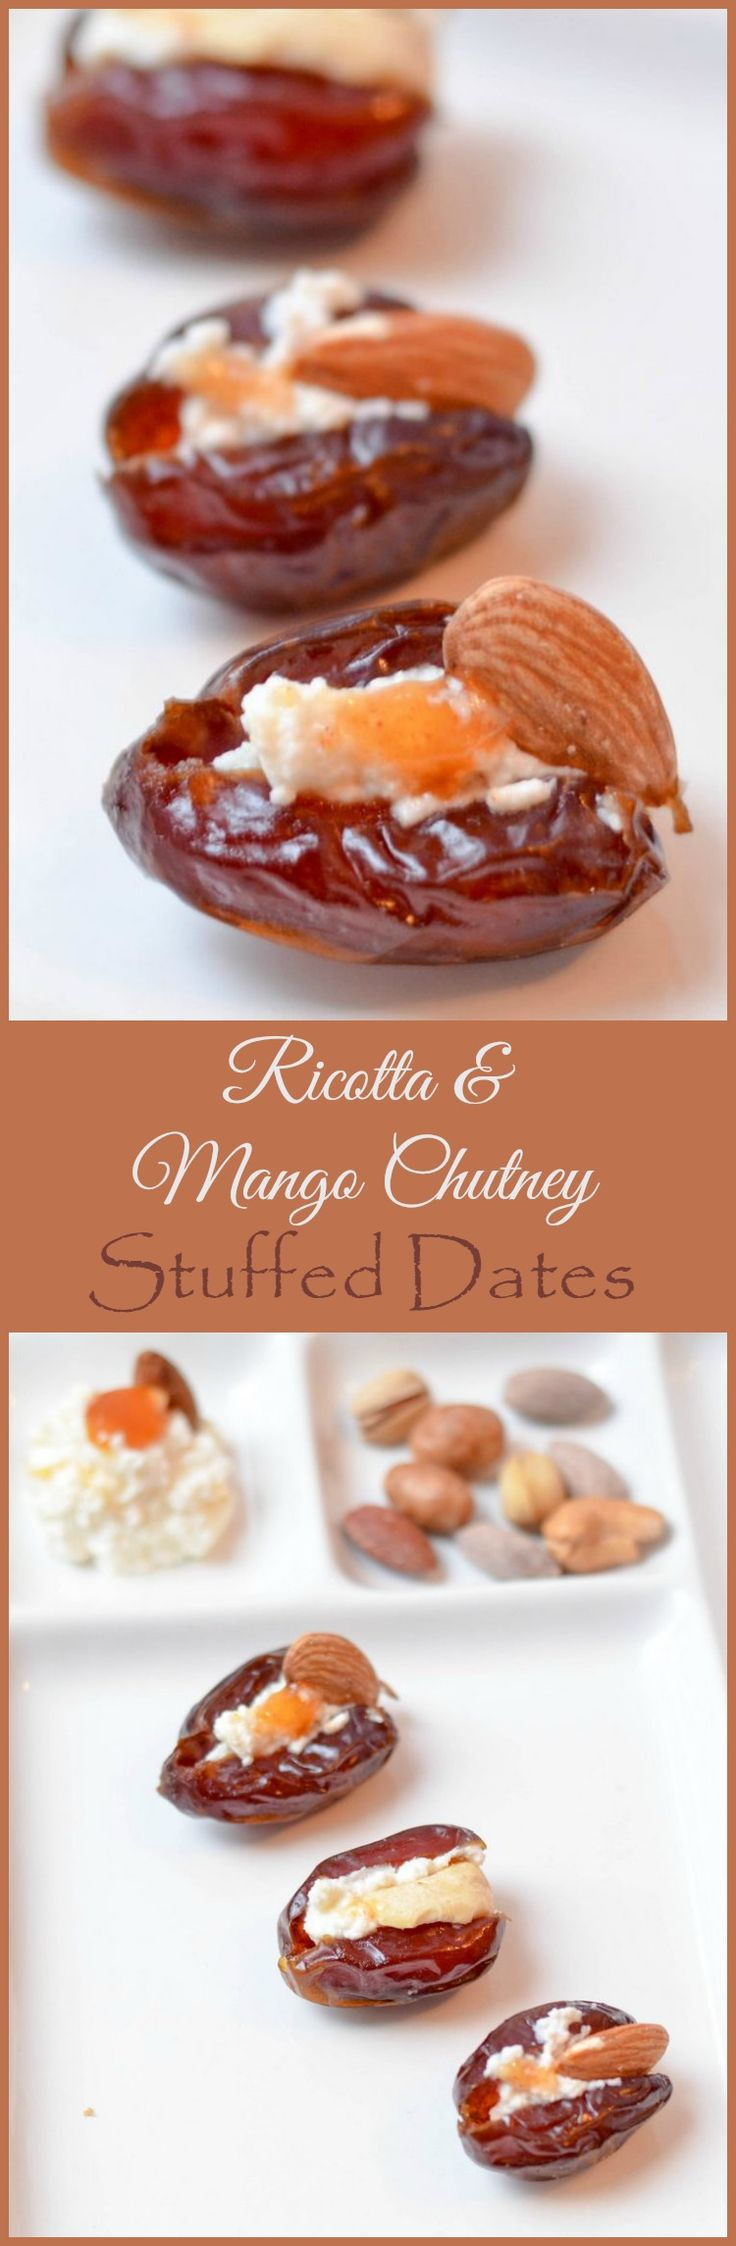 Need a delicious holiday appetizer that brings a bit of culture to your party? Try our Ricotta & Mango Chutney stuffed dates!